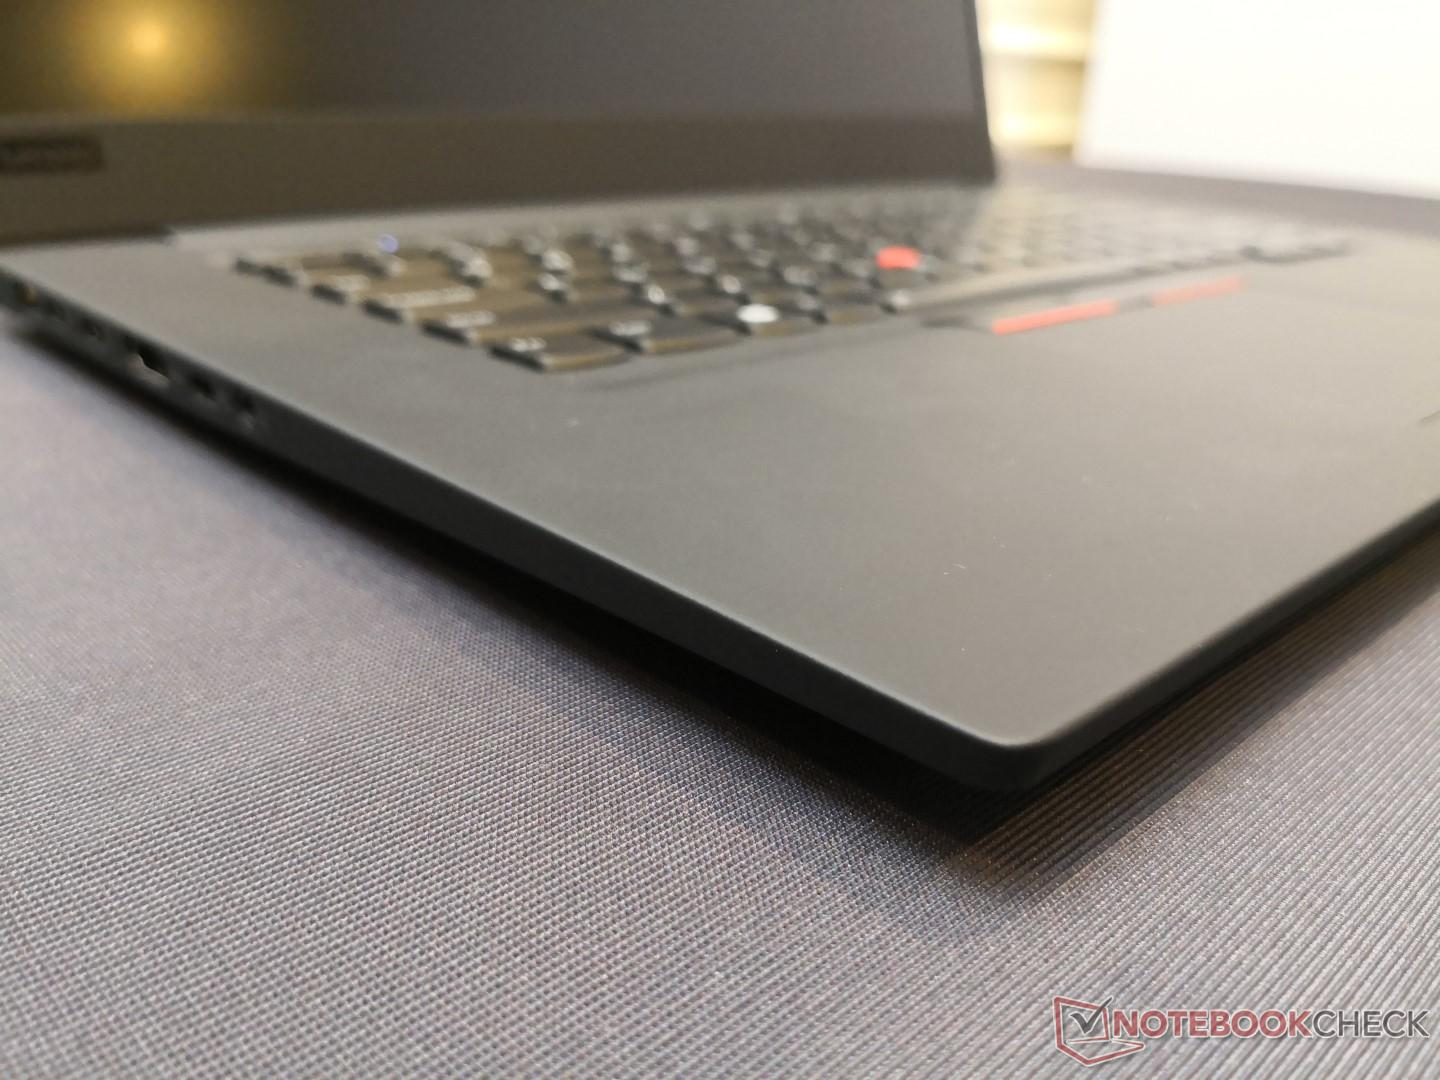 Lenovo ThinkPad P1 now official, is the manufacturer's